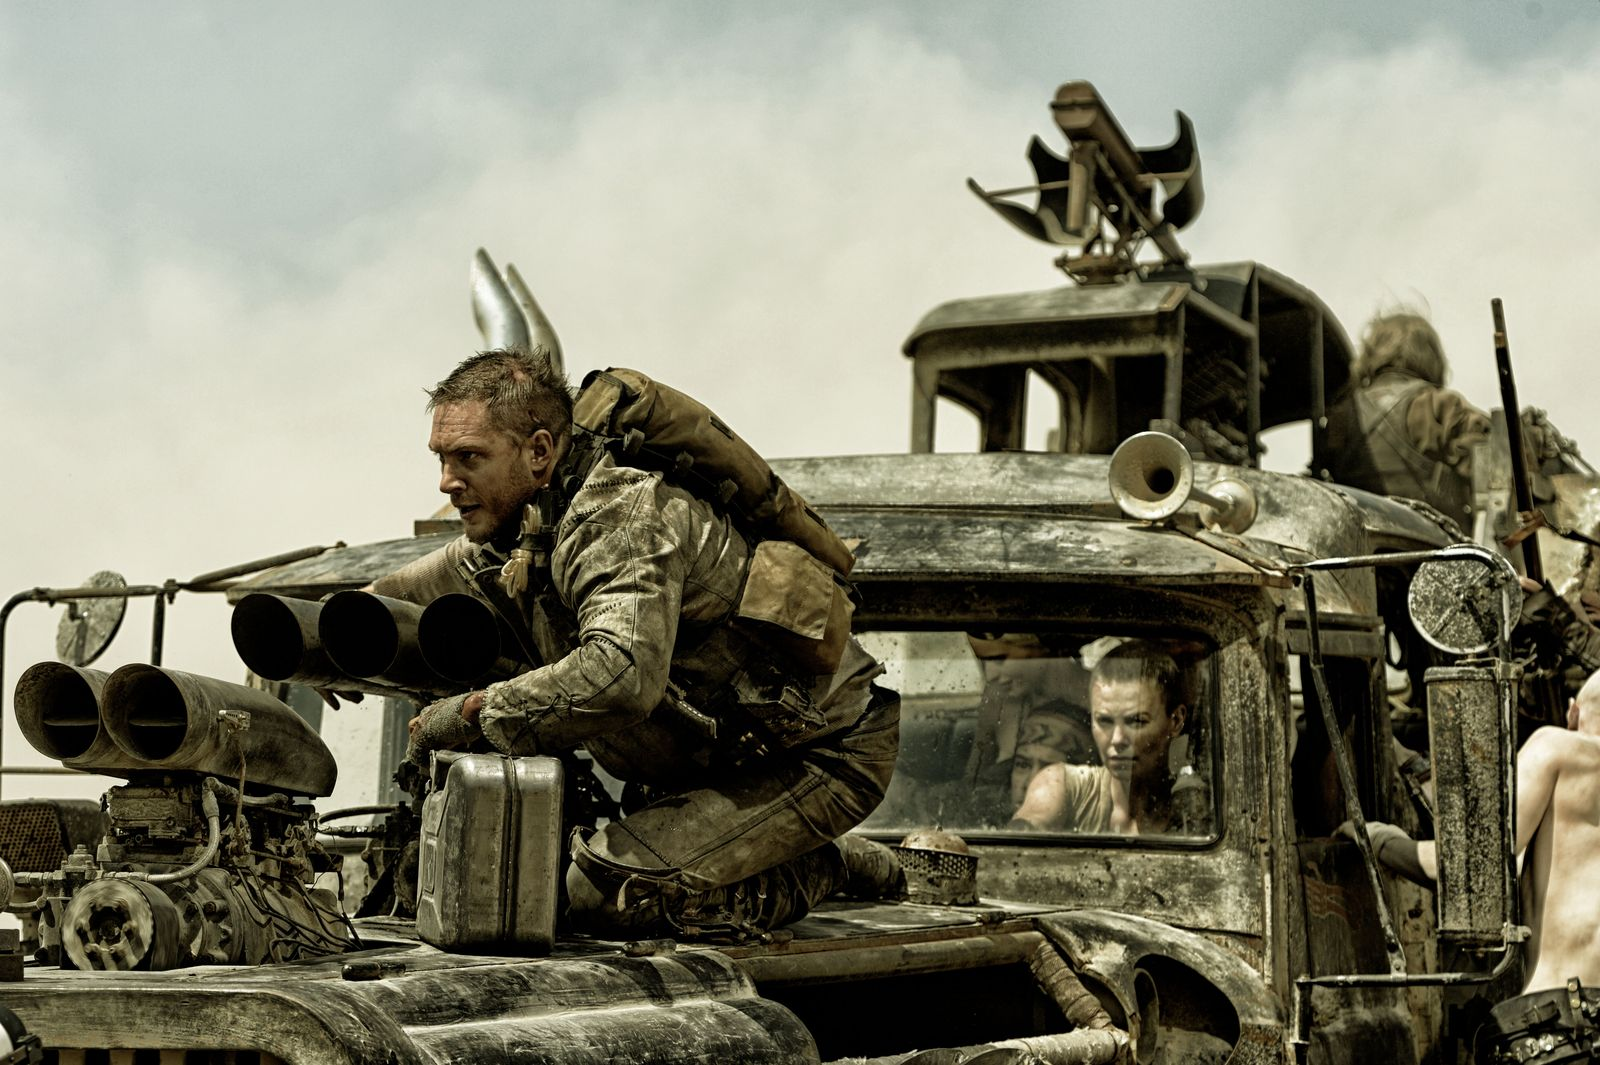 http://www.film.ru/sites/default/files/images/mad-max-fury-road-image-tom-hardy-the-war-rig(1).jpg